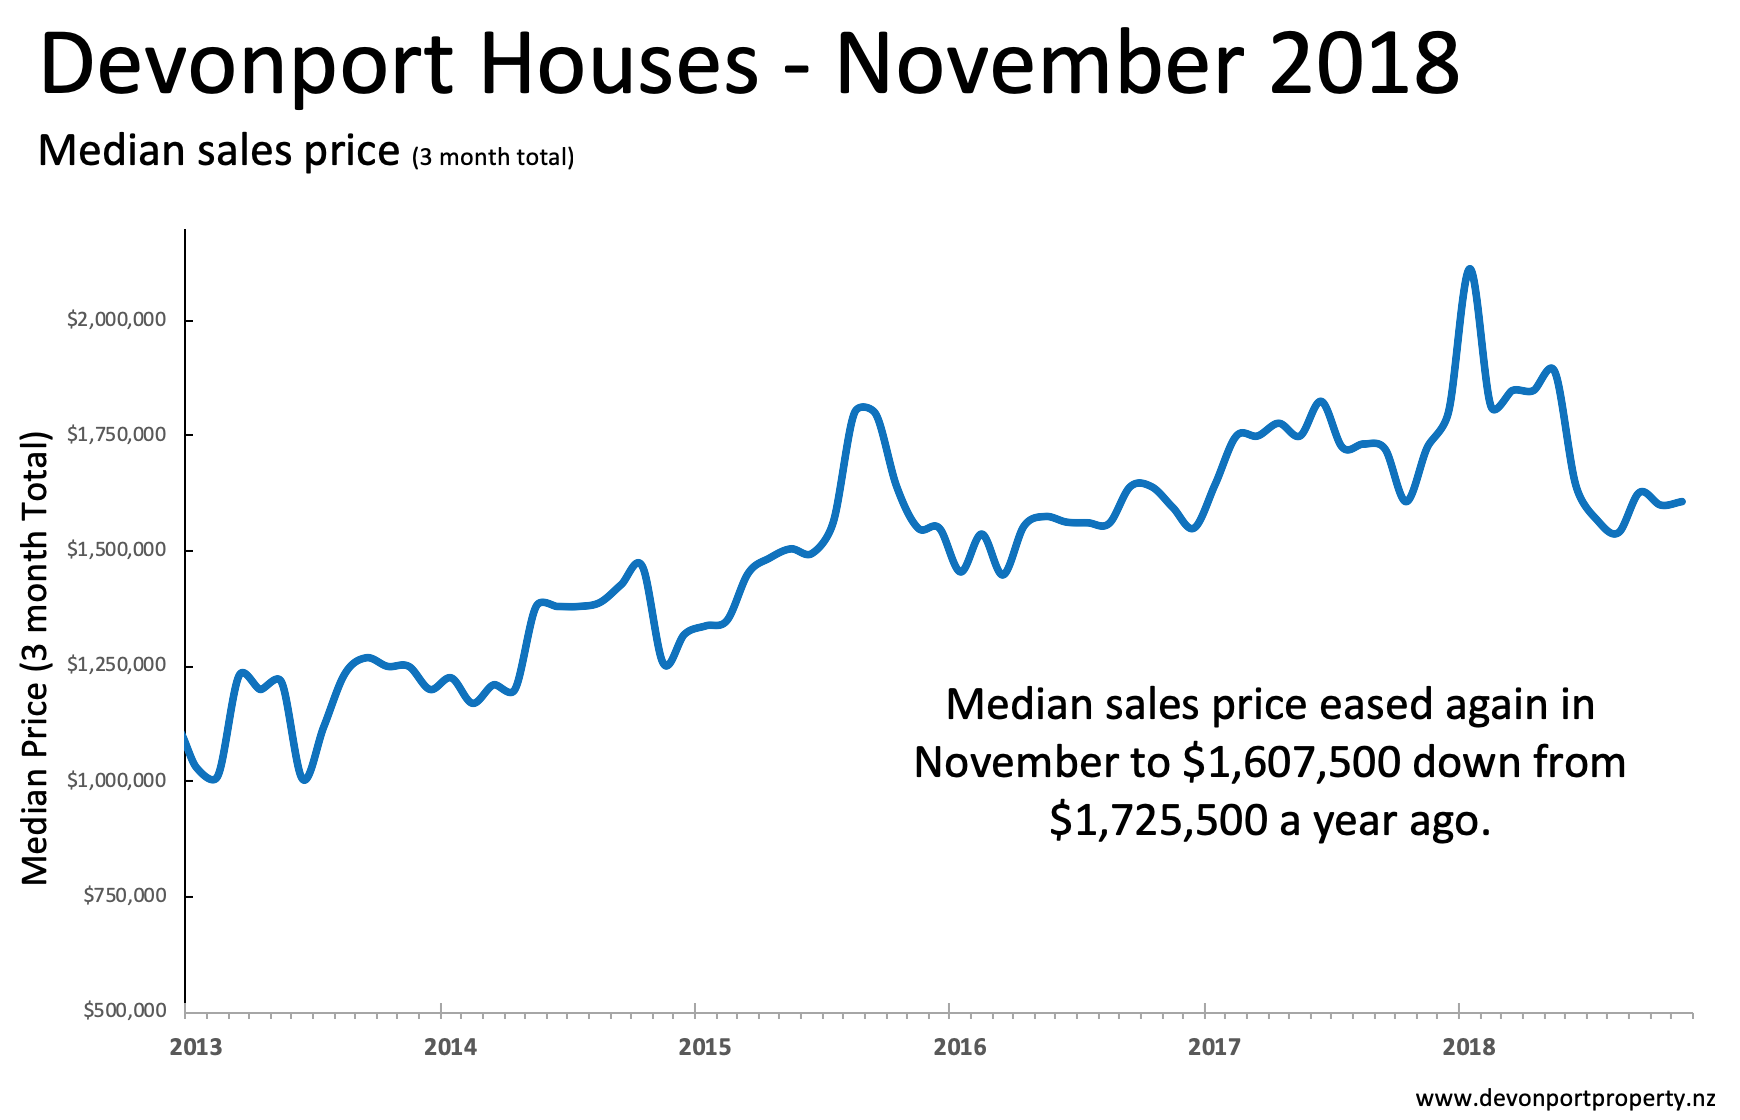 Devonport Property Nov 2018 - Houses median price 3MMT .png